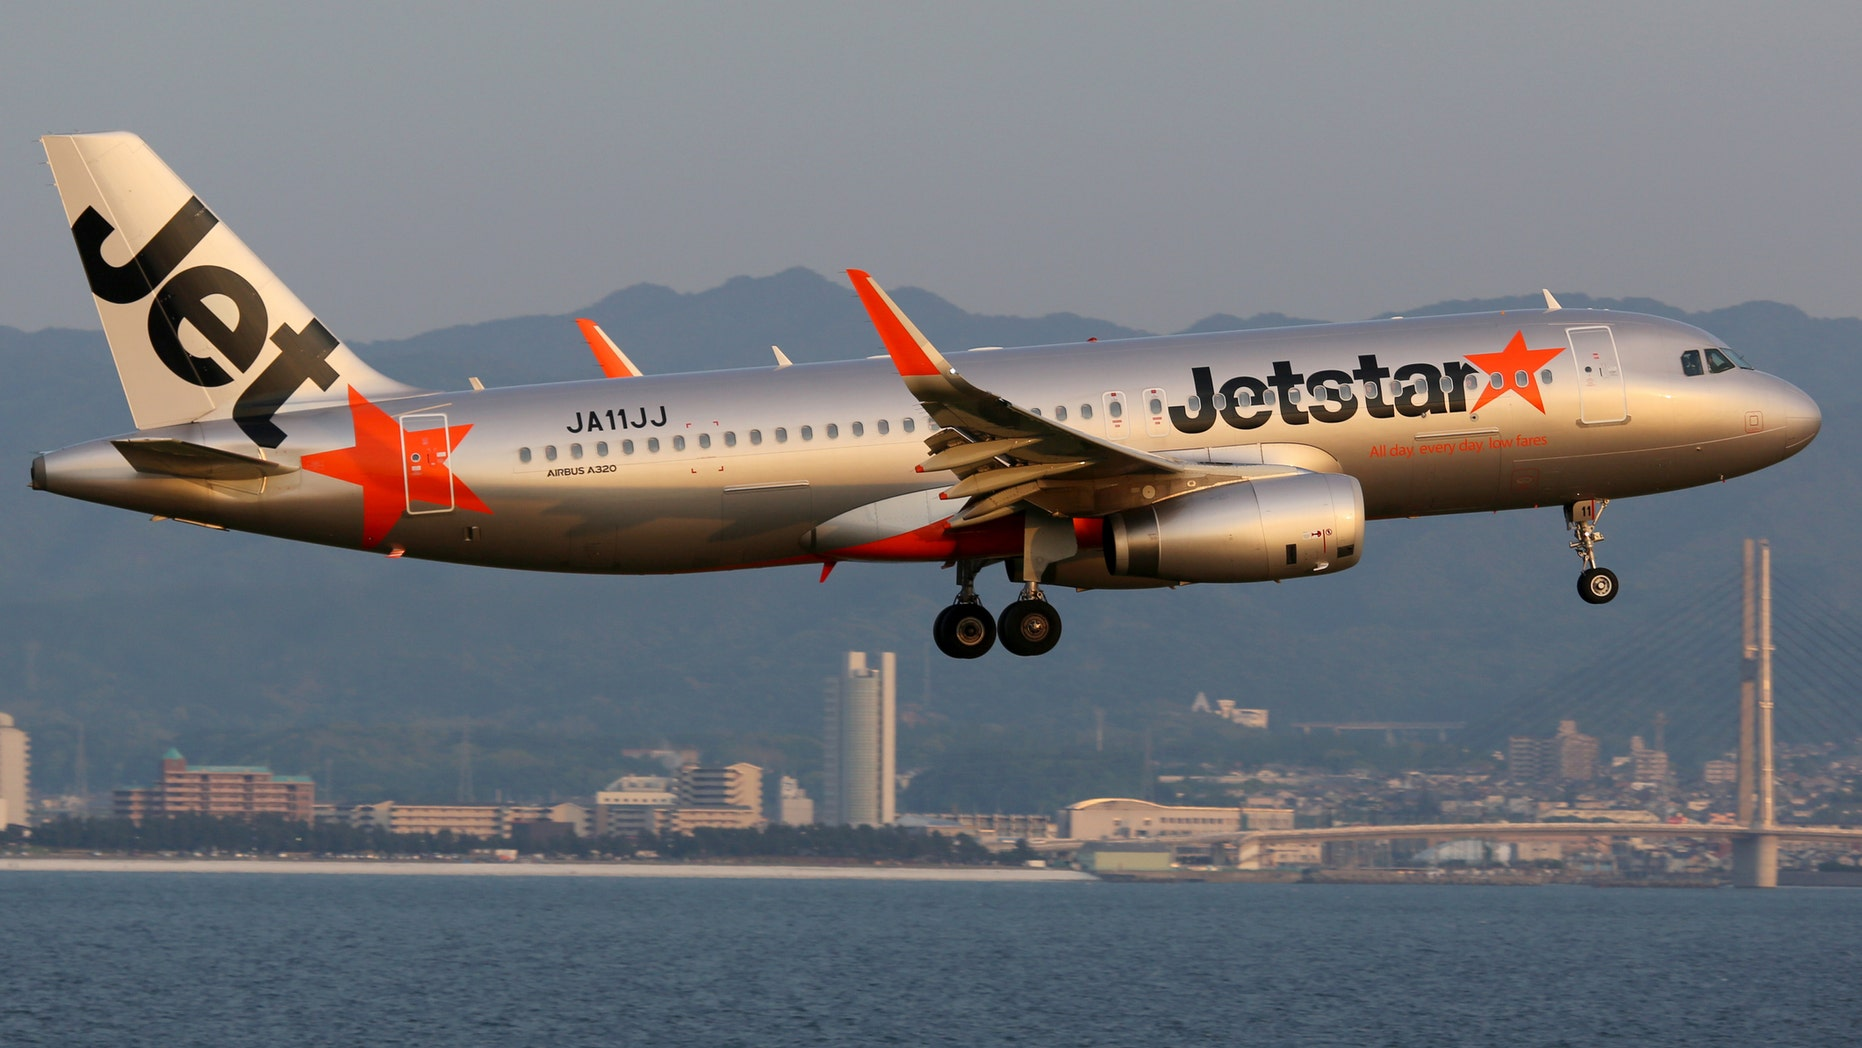 """""""Everybody on the plane was looking at me I was so embarrassed and shocked. So thank you Jetstar, for slut shaming me and then offering me this in return. I'm so disgusted,"""" the passenger wrote online."""